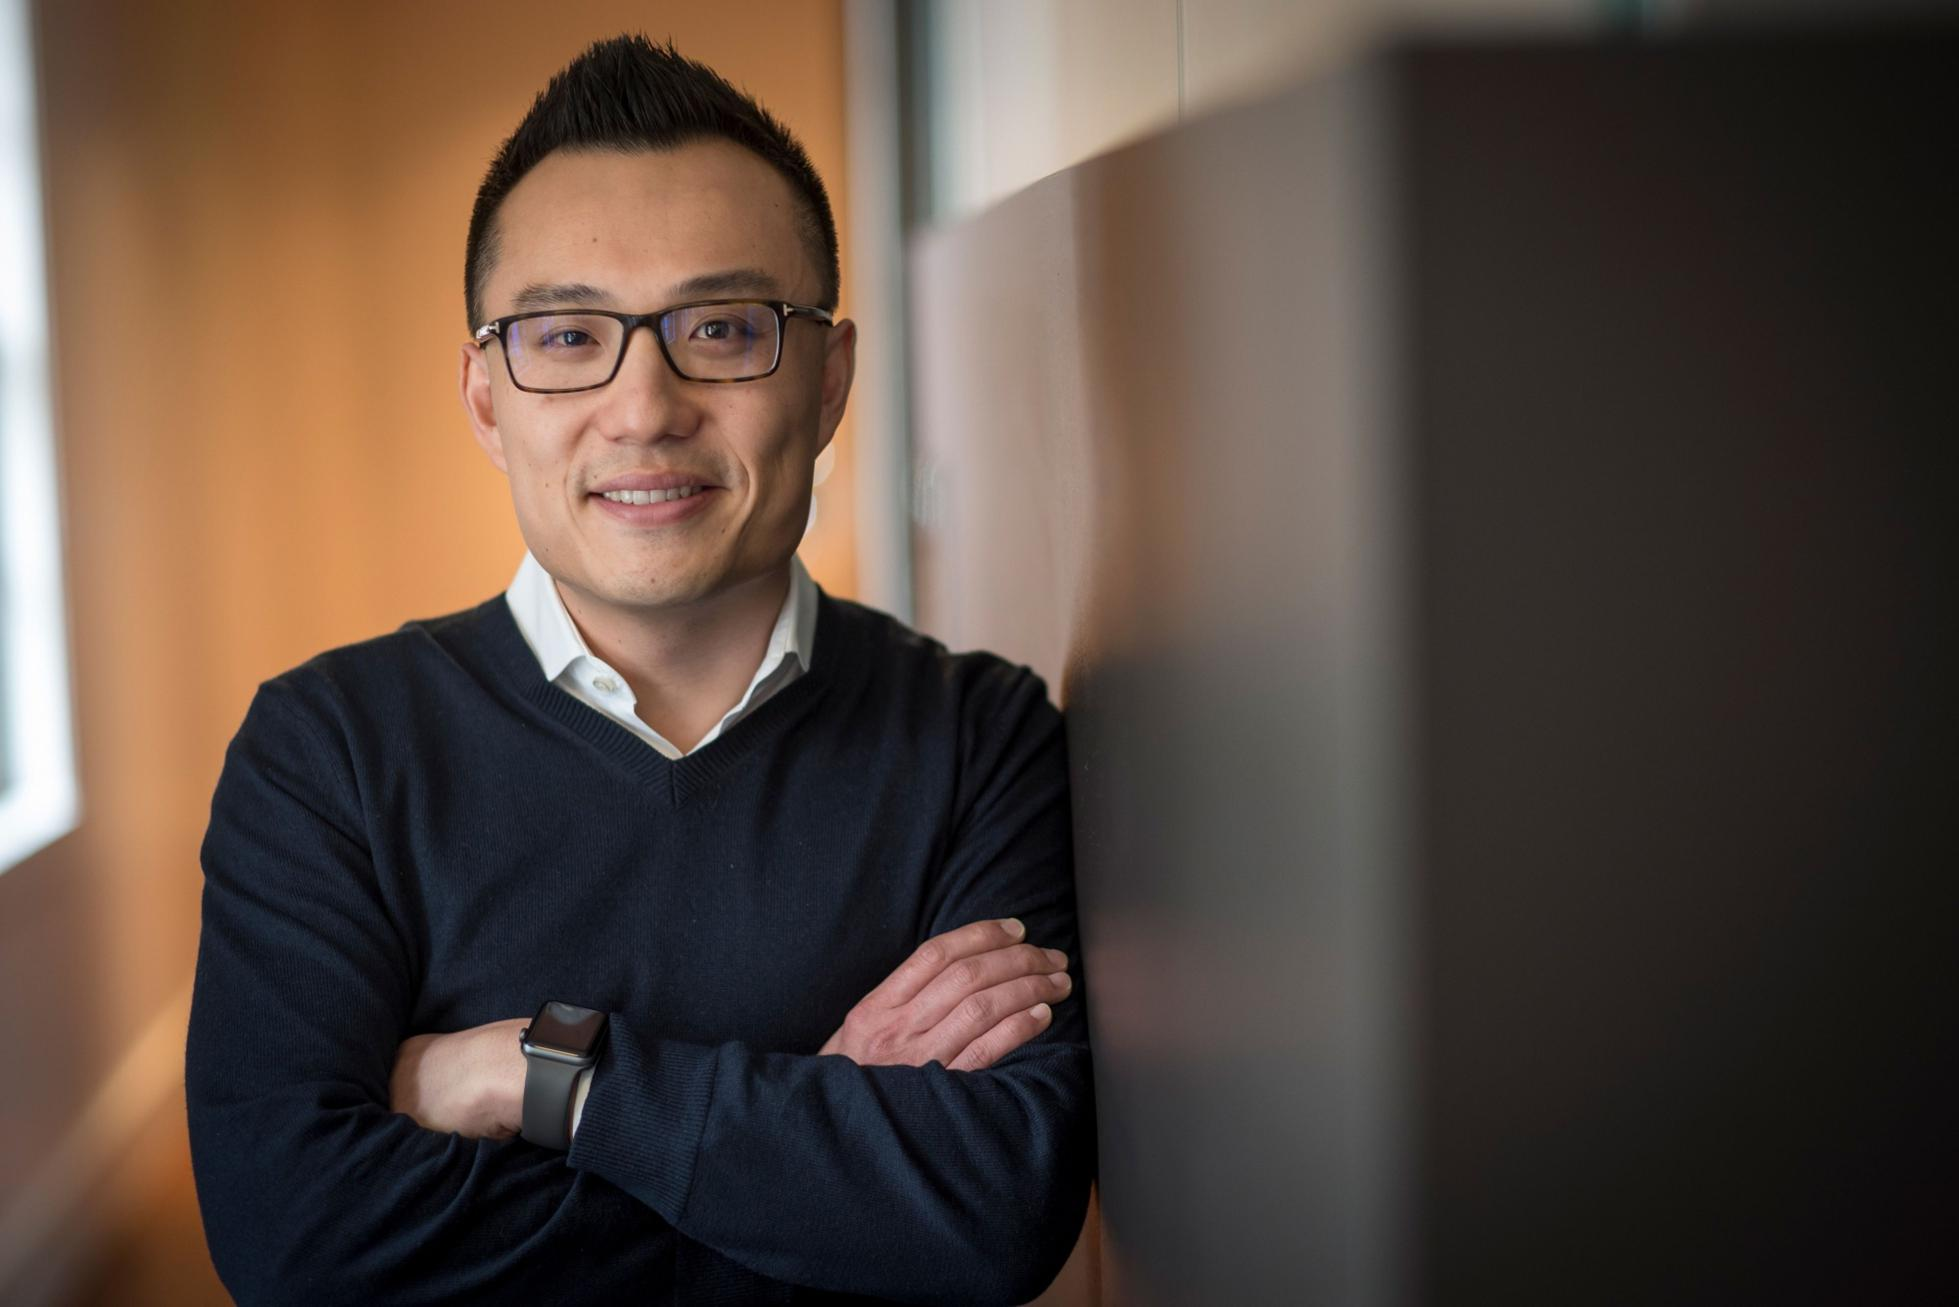 DoorDash Inc. Co-Founder And CEO Tony Xu Interview